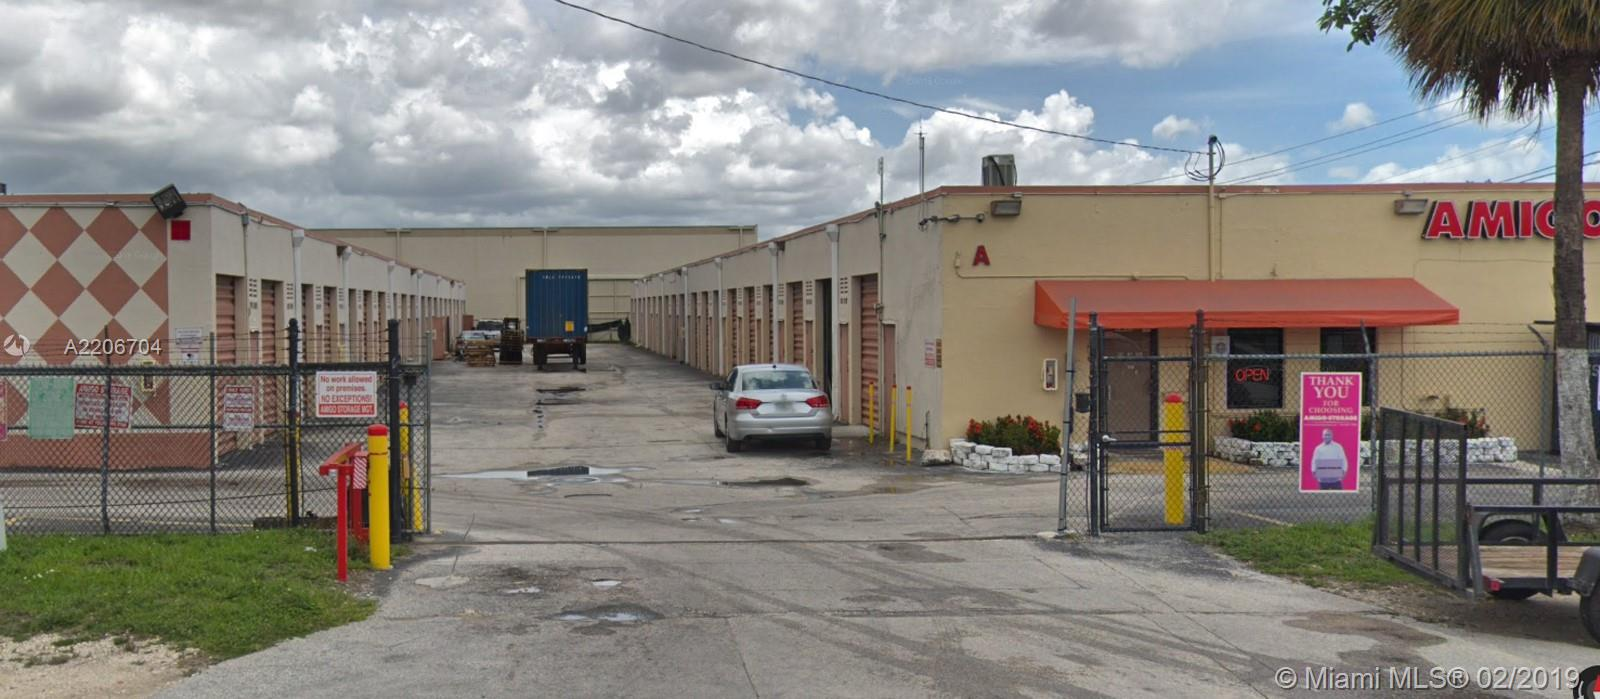 7401 NW 68 ST, Miami, Florida 33166, ,Commercial Sale,For Sale,7401 NW 68 ST,A2206704